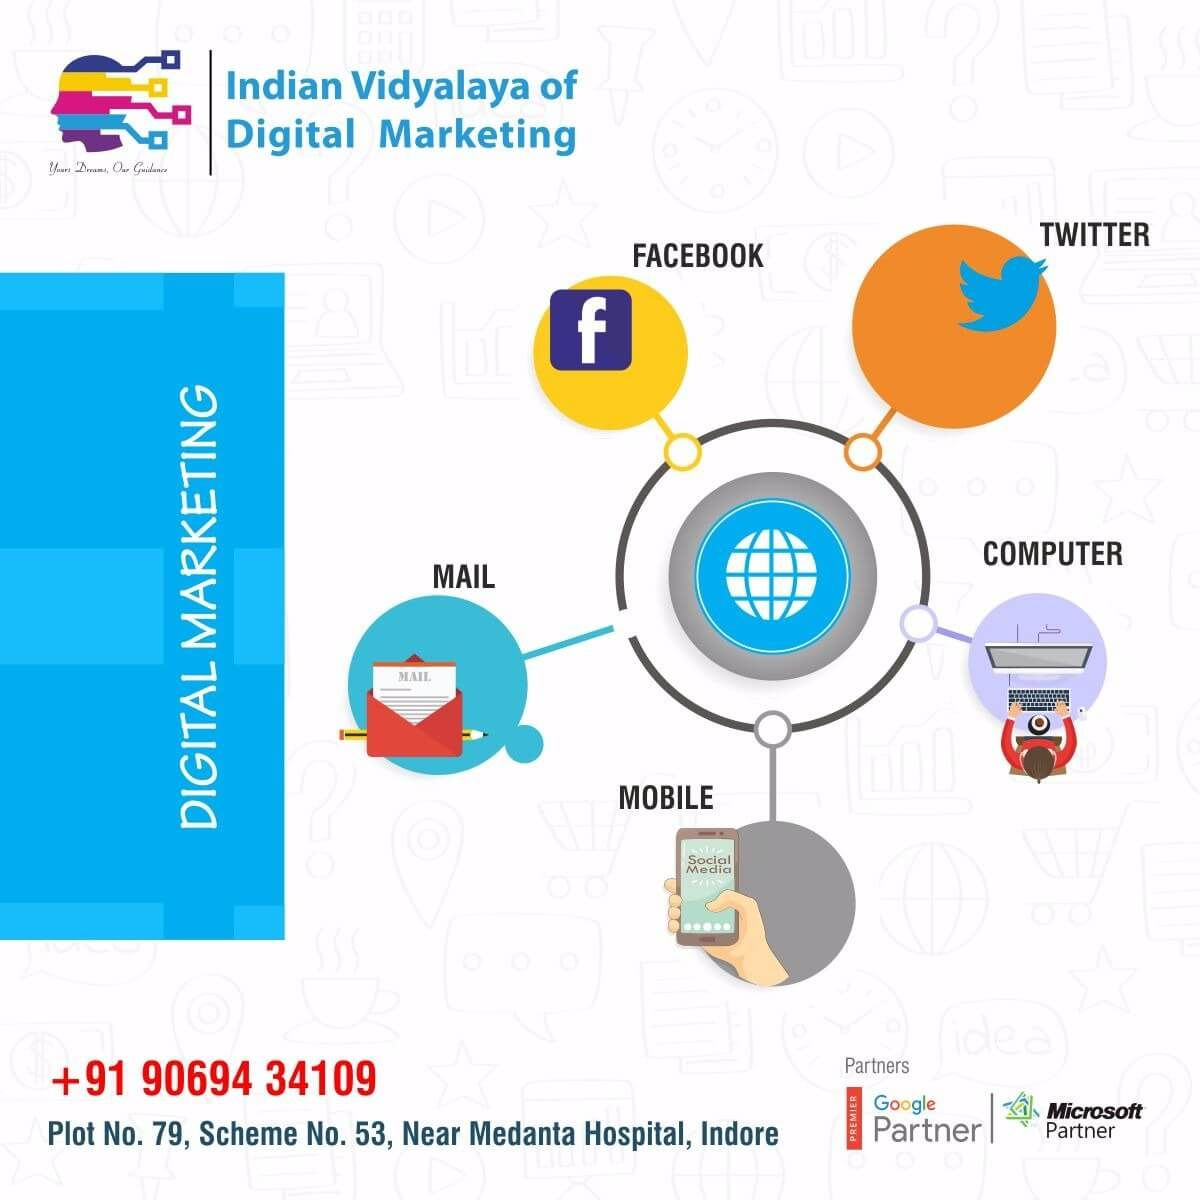 Indian Vidyalaya of Digital Marketing (IVDM) is one of the